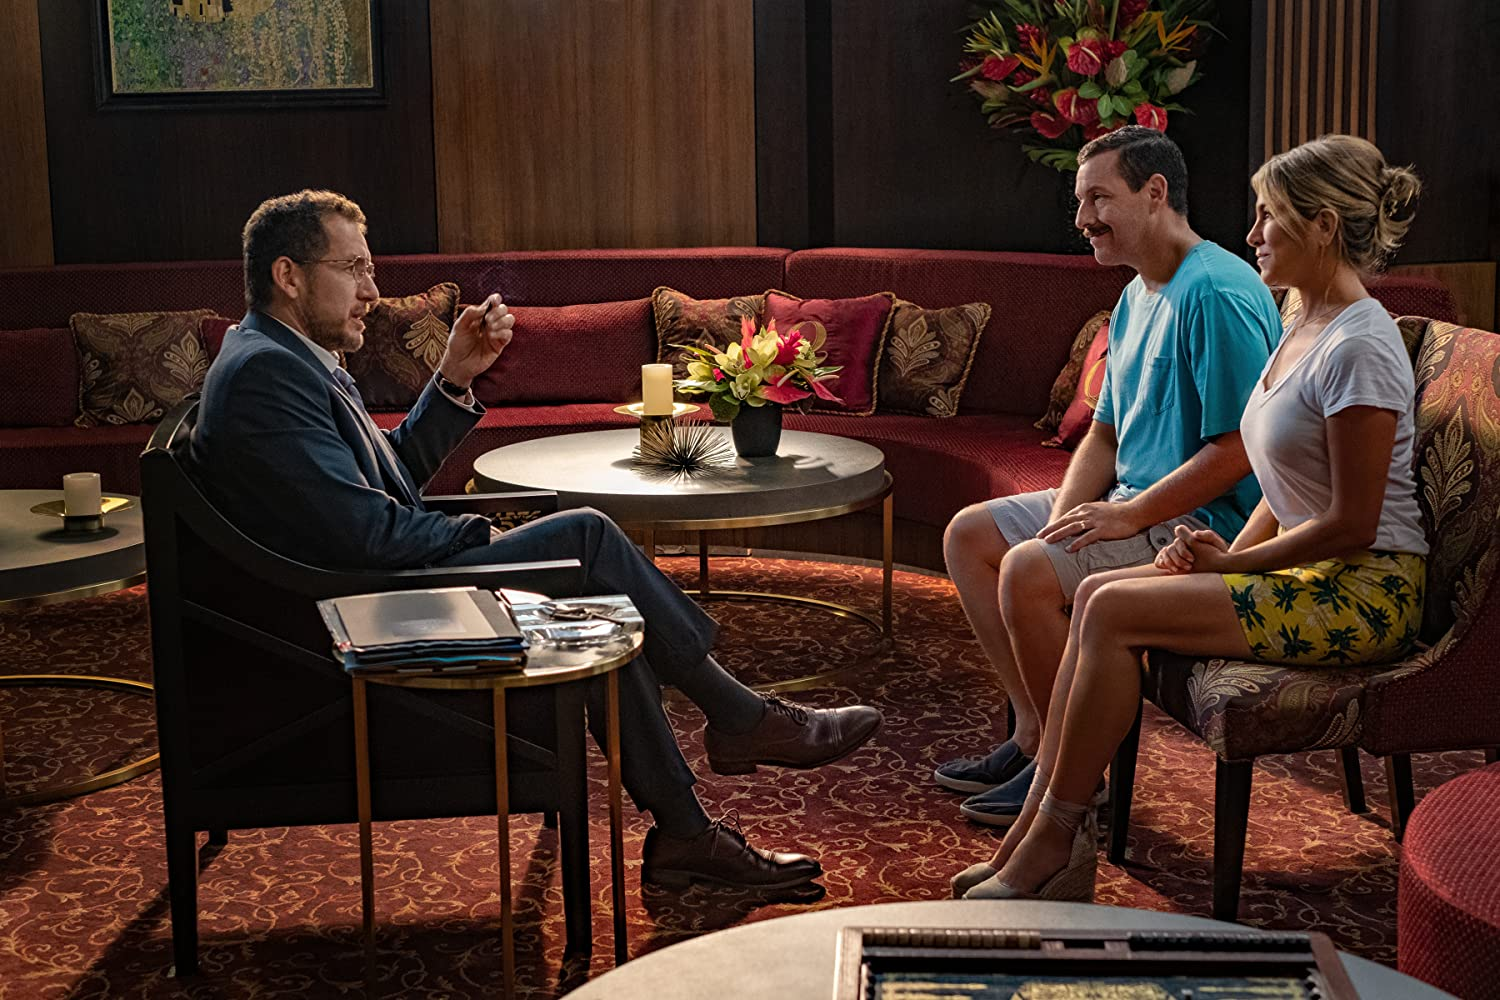 Jennifer Aniston, Adam Sandler, and Dany Boon in Murder Mystery (2019)